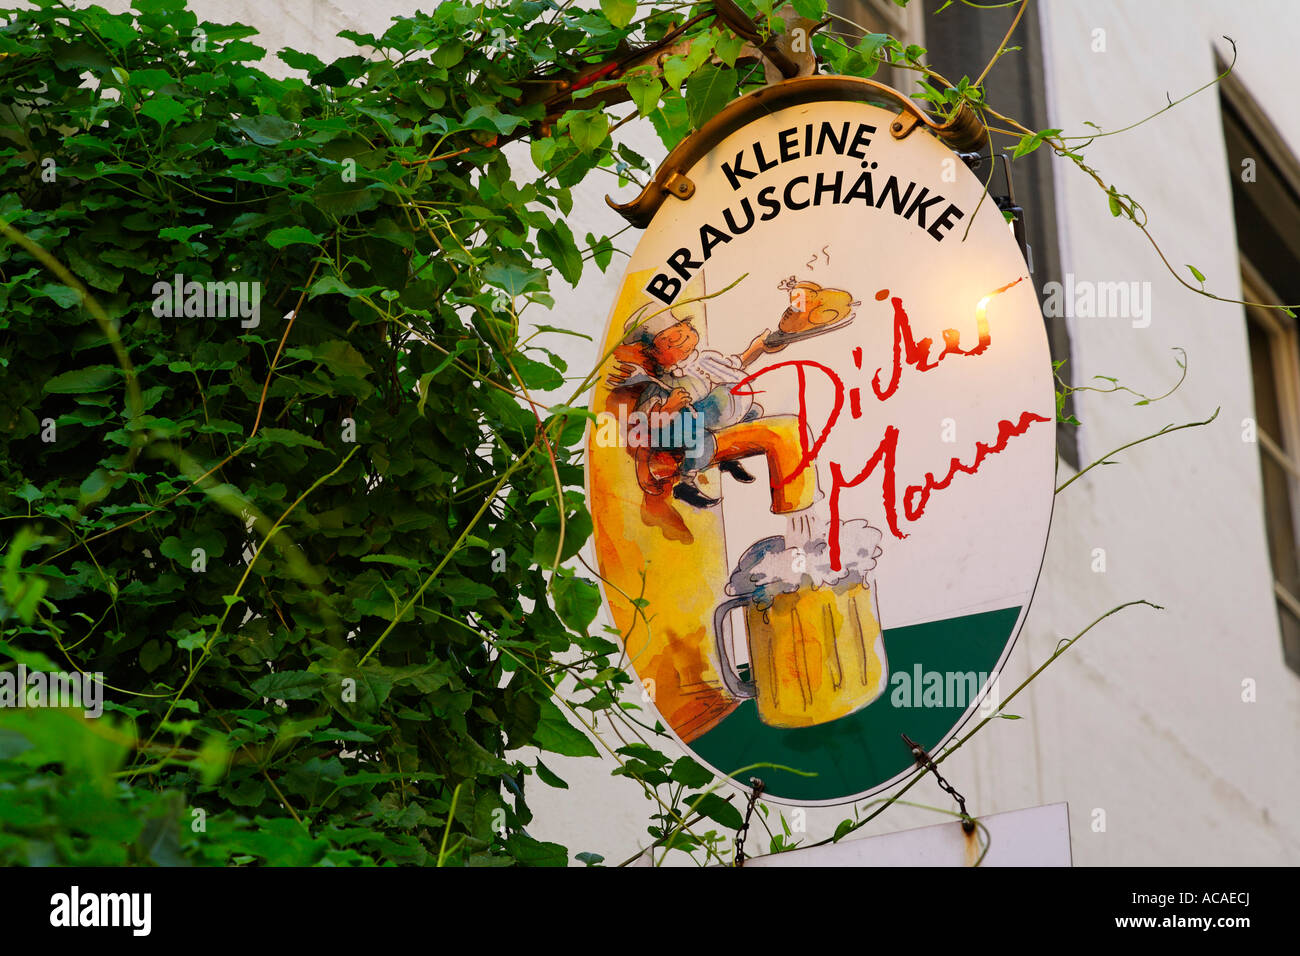 Inn sign Dicker Mann, Regensburg, Upper Palatinate, Bavaria, Germany - Stock Image